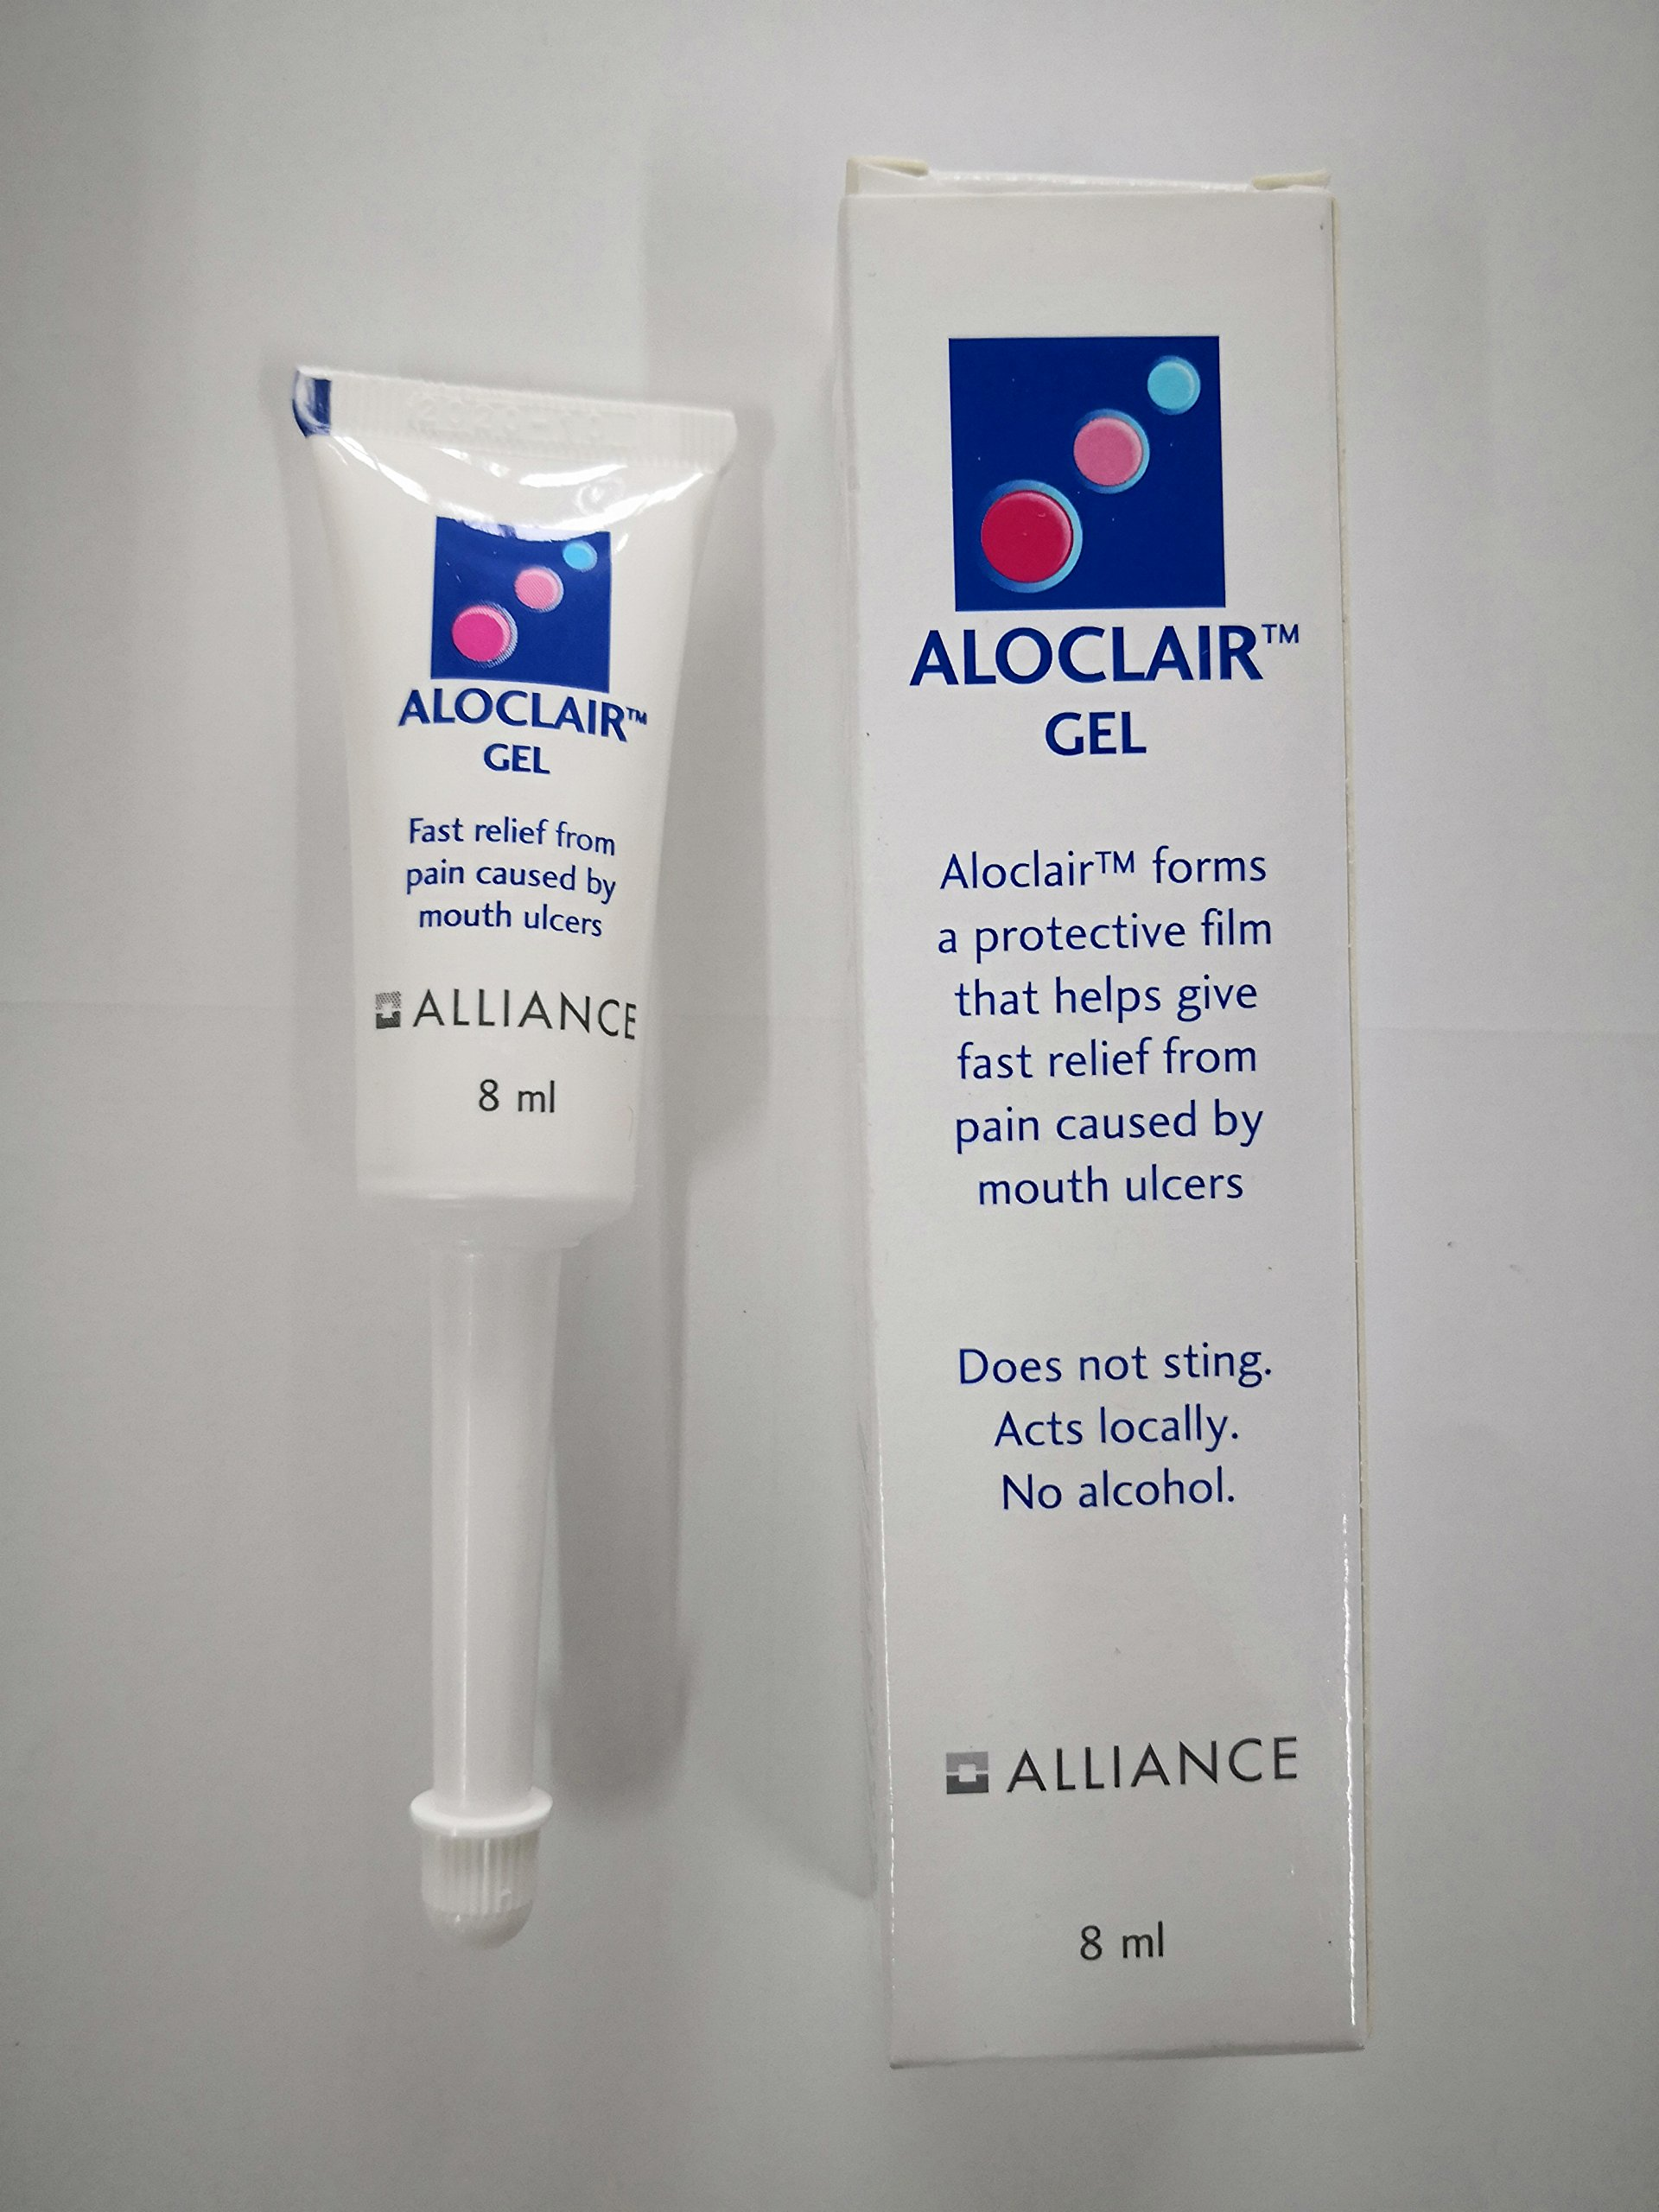 Aloclair Gel 8ml soothing mouth ulcers and sores